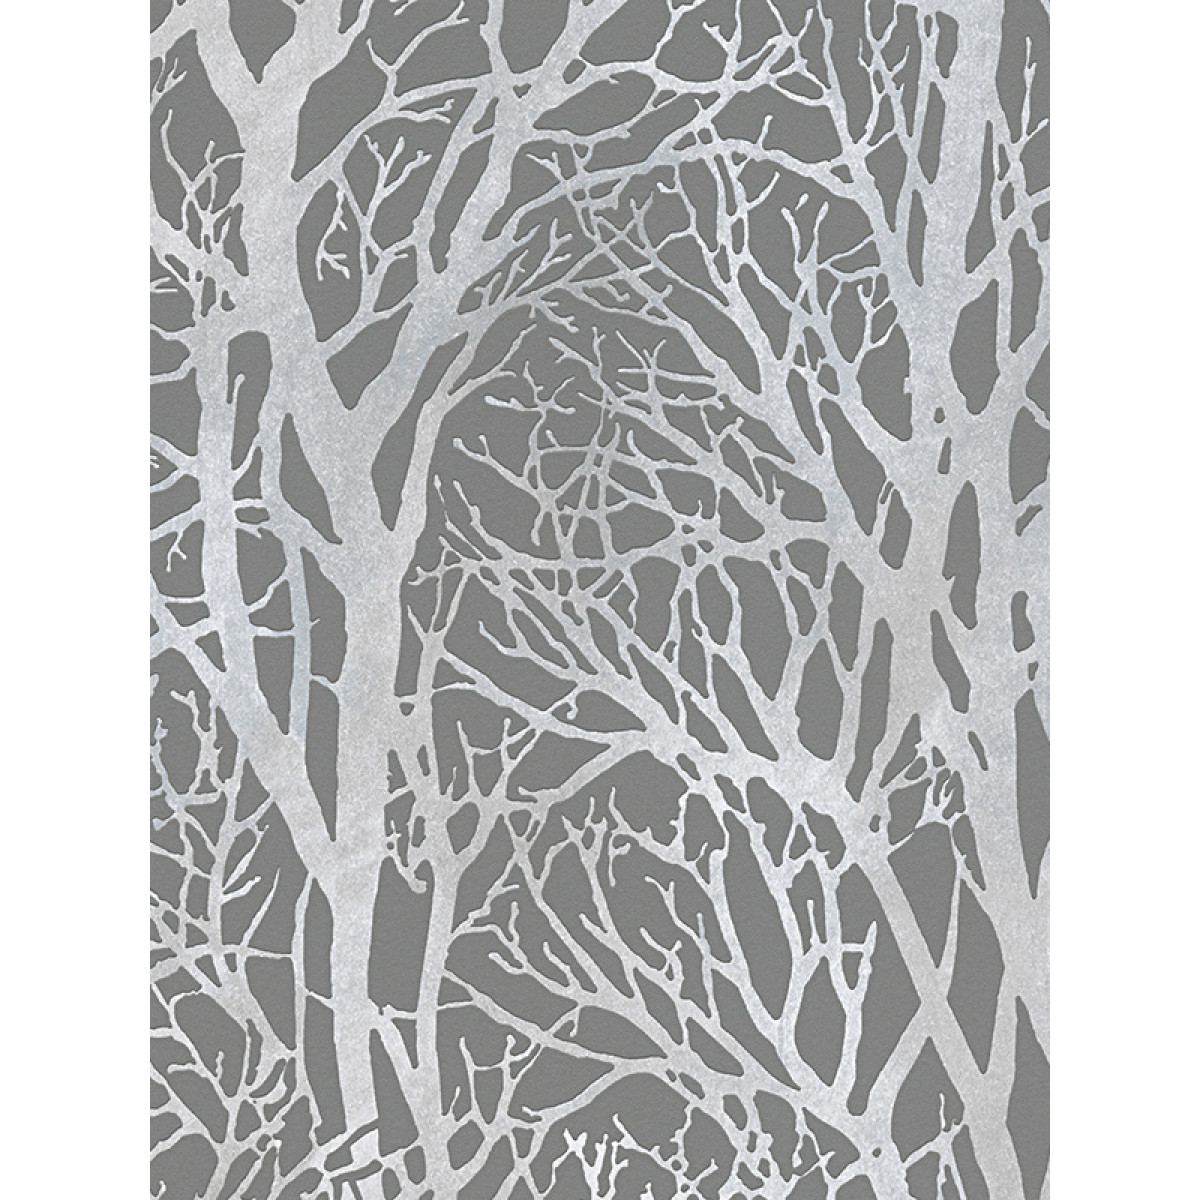 Tree branches wallpaper dark grey and silver as creation for Papier peint blanc argent